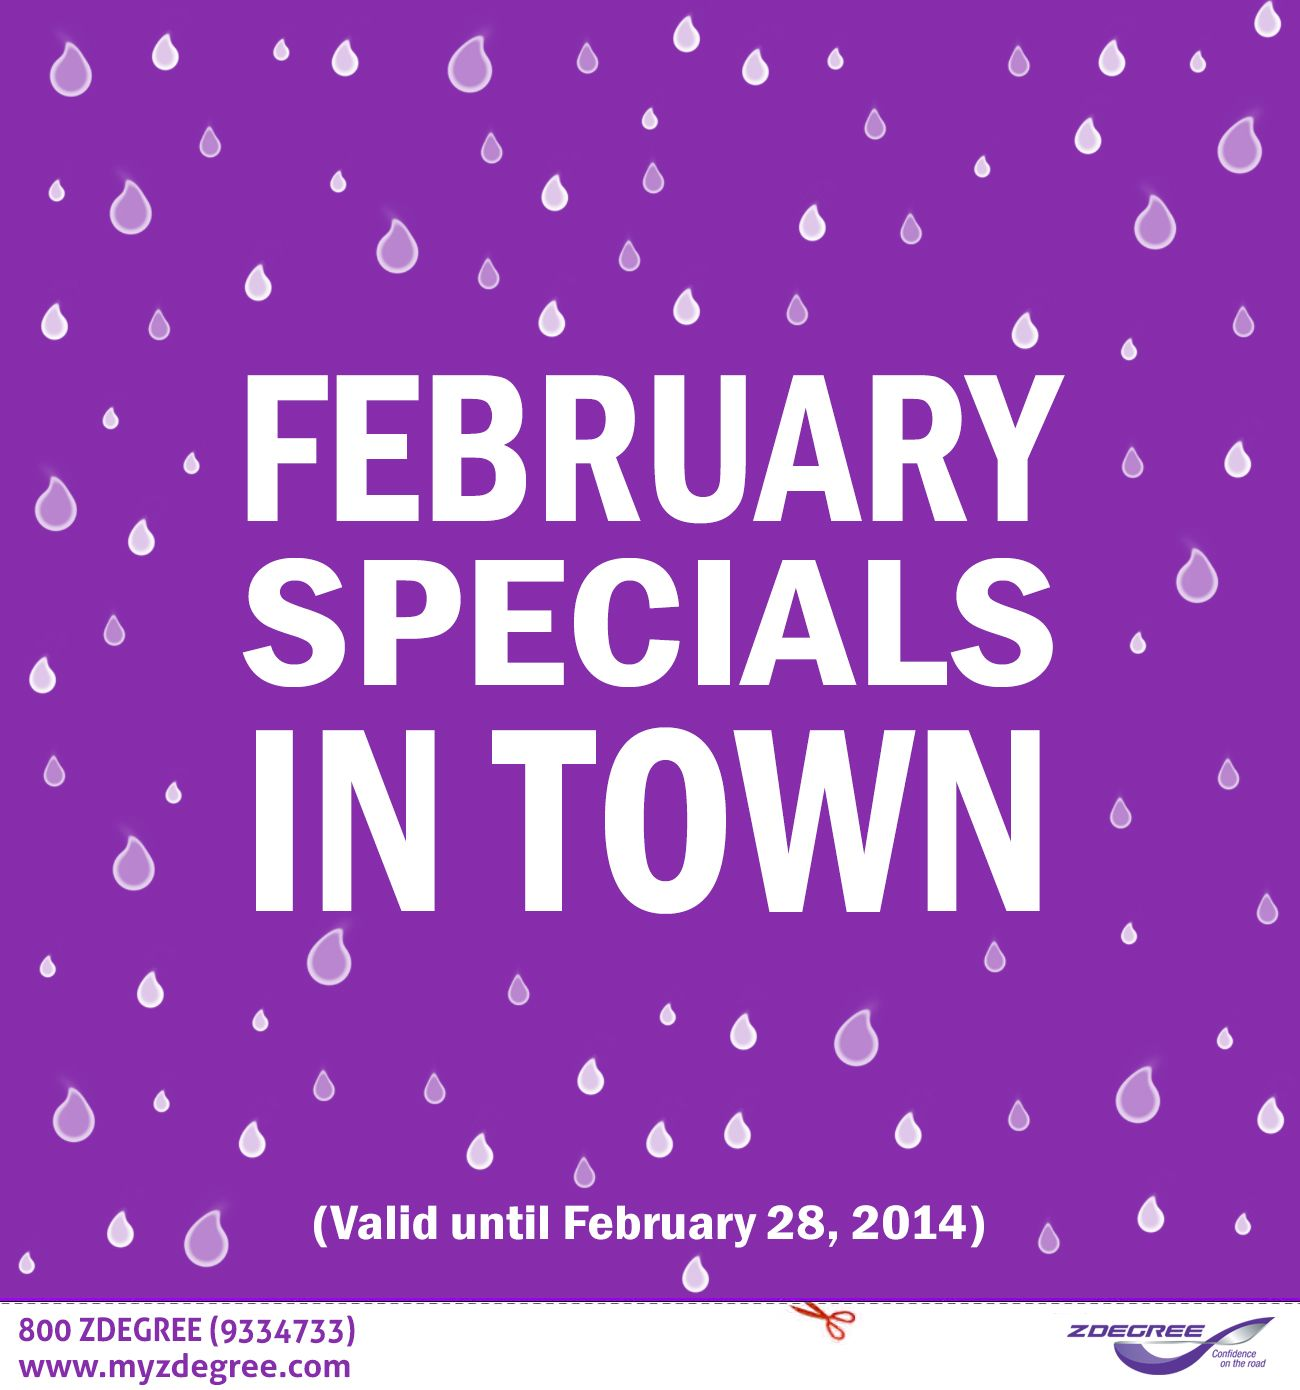 Our February Specials! Discounts on Tire & Auto Services